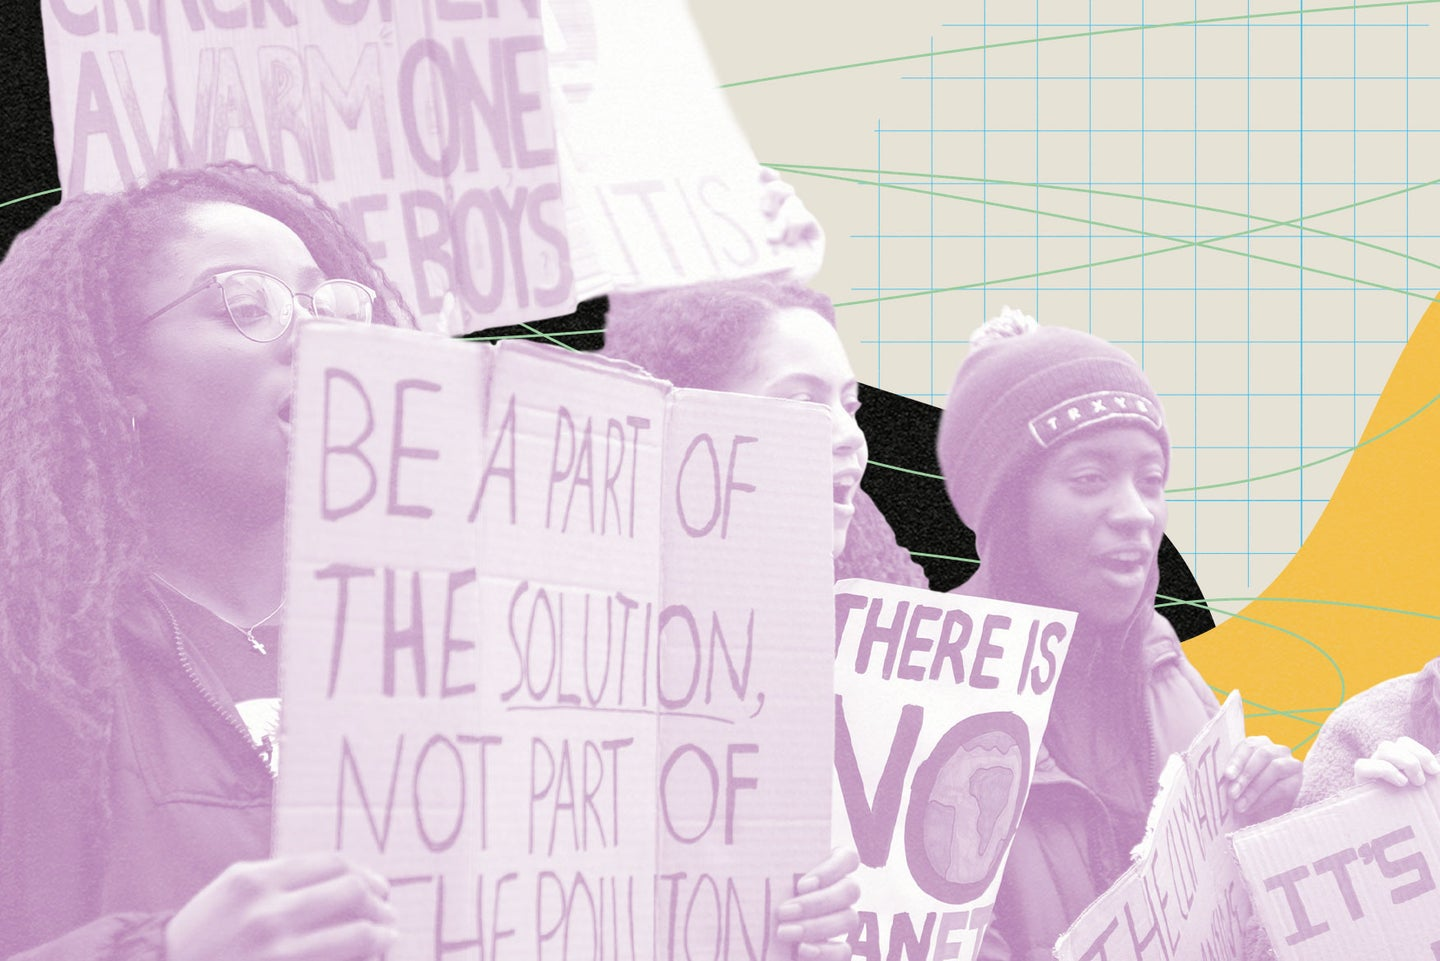 Young climate change activists holding signs at a protest with a light purple filter